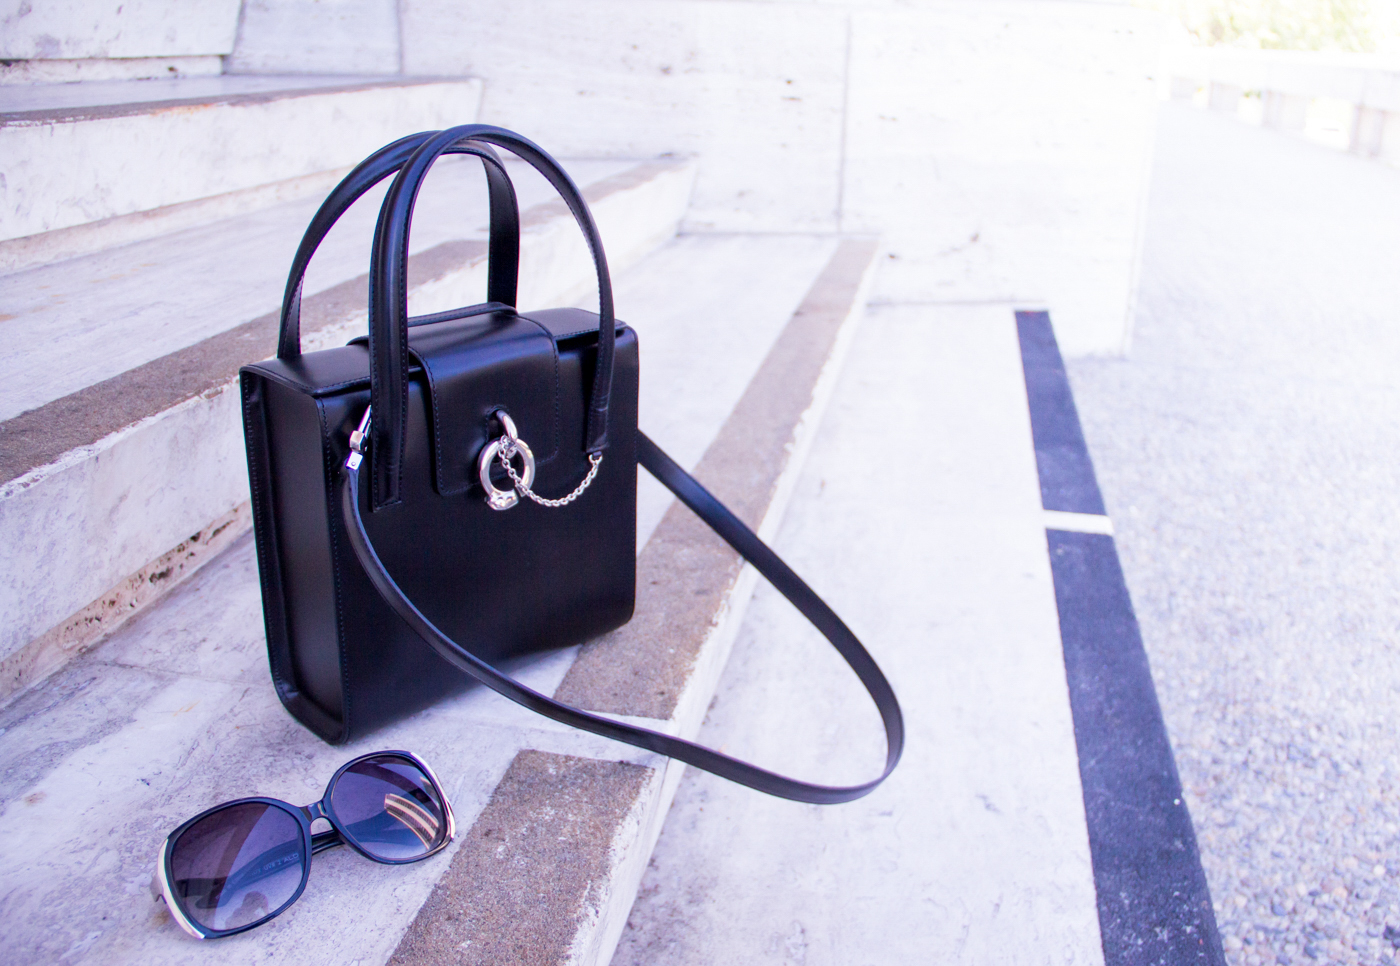 Cartier leather structured bag & Aldo sunglasses   The Chic Diary